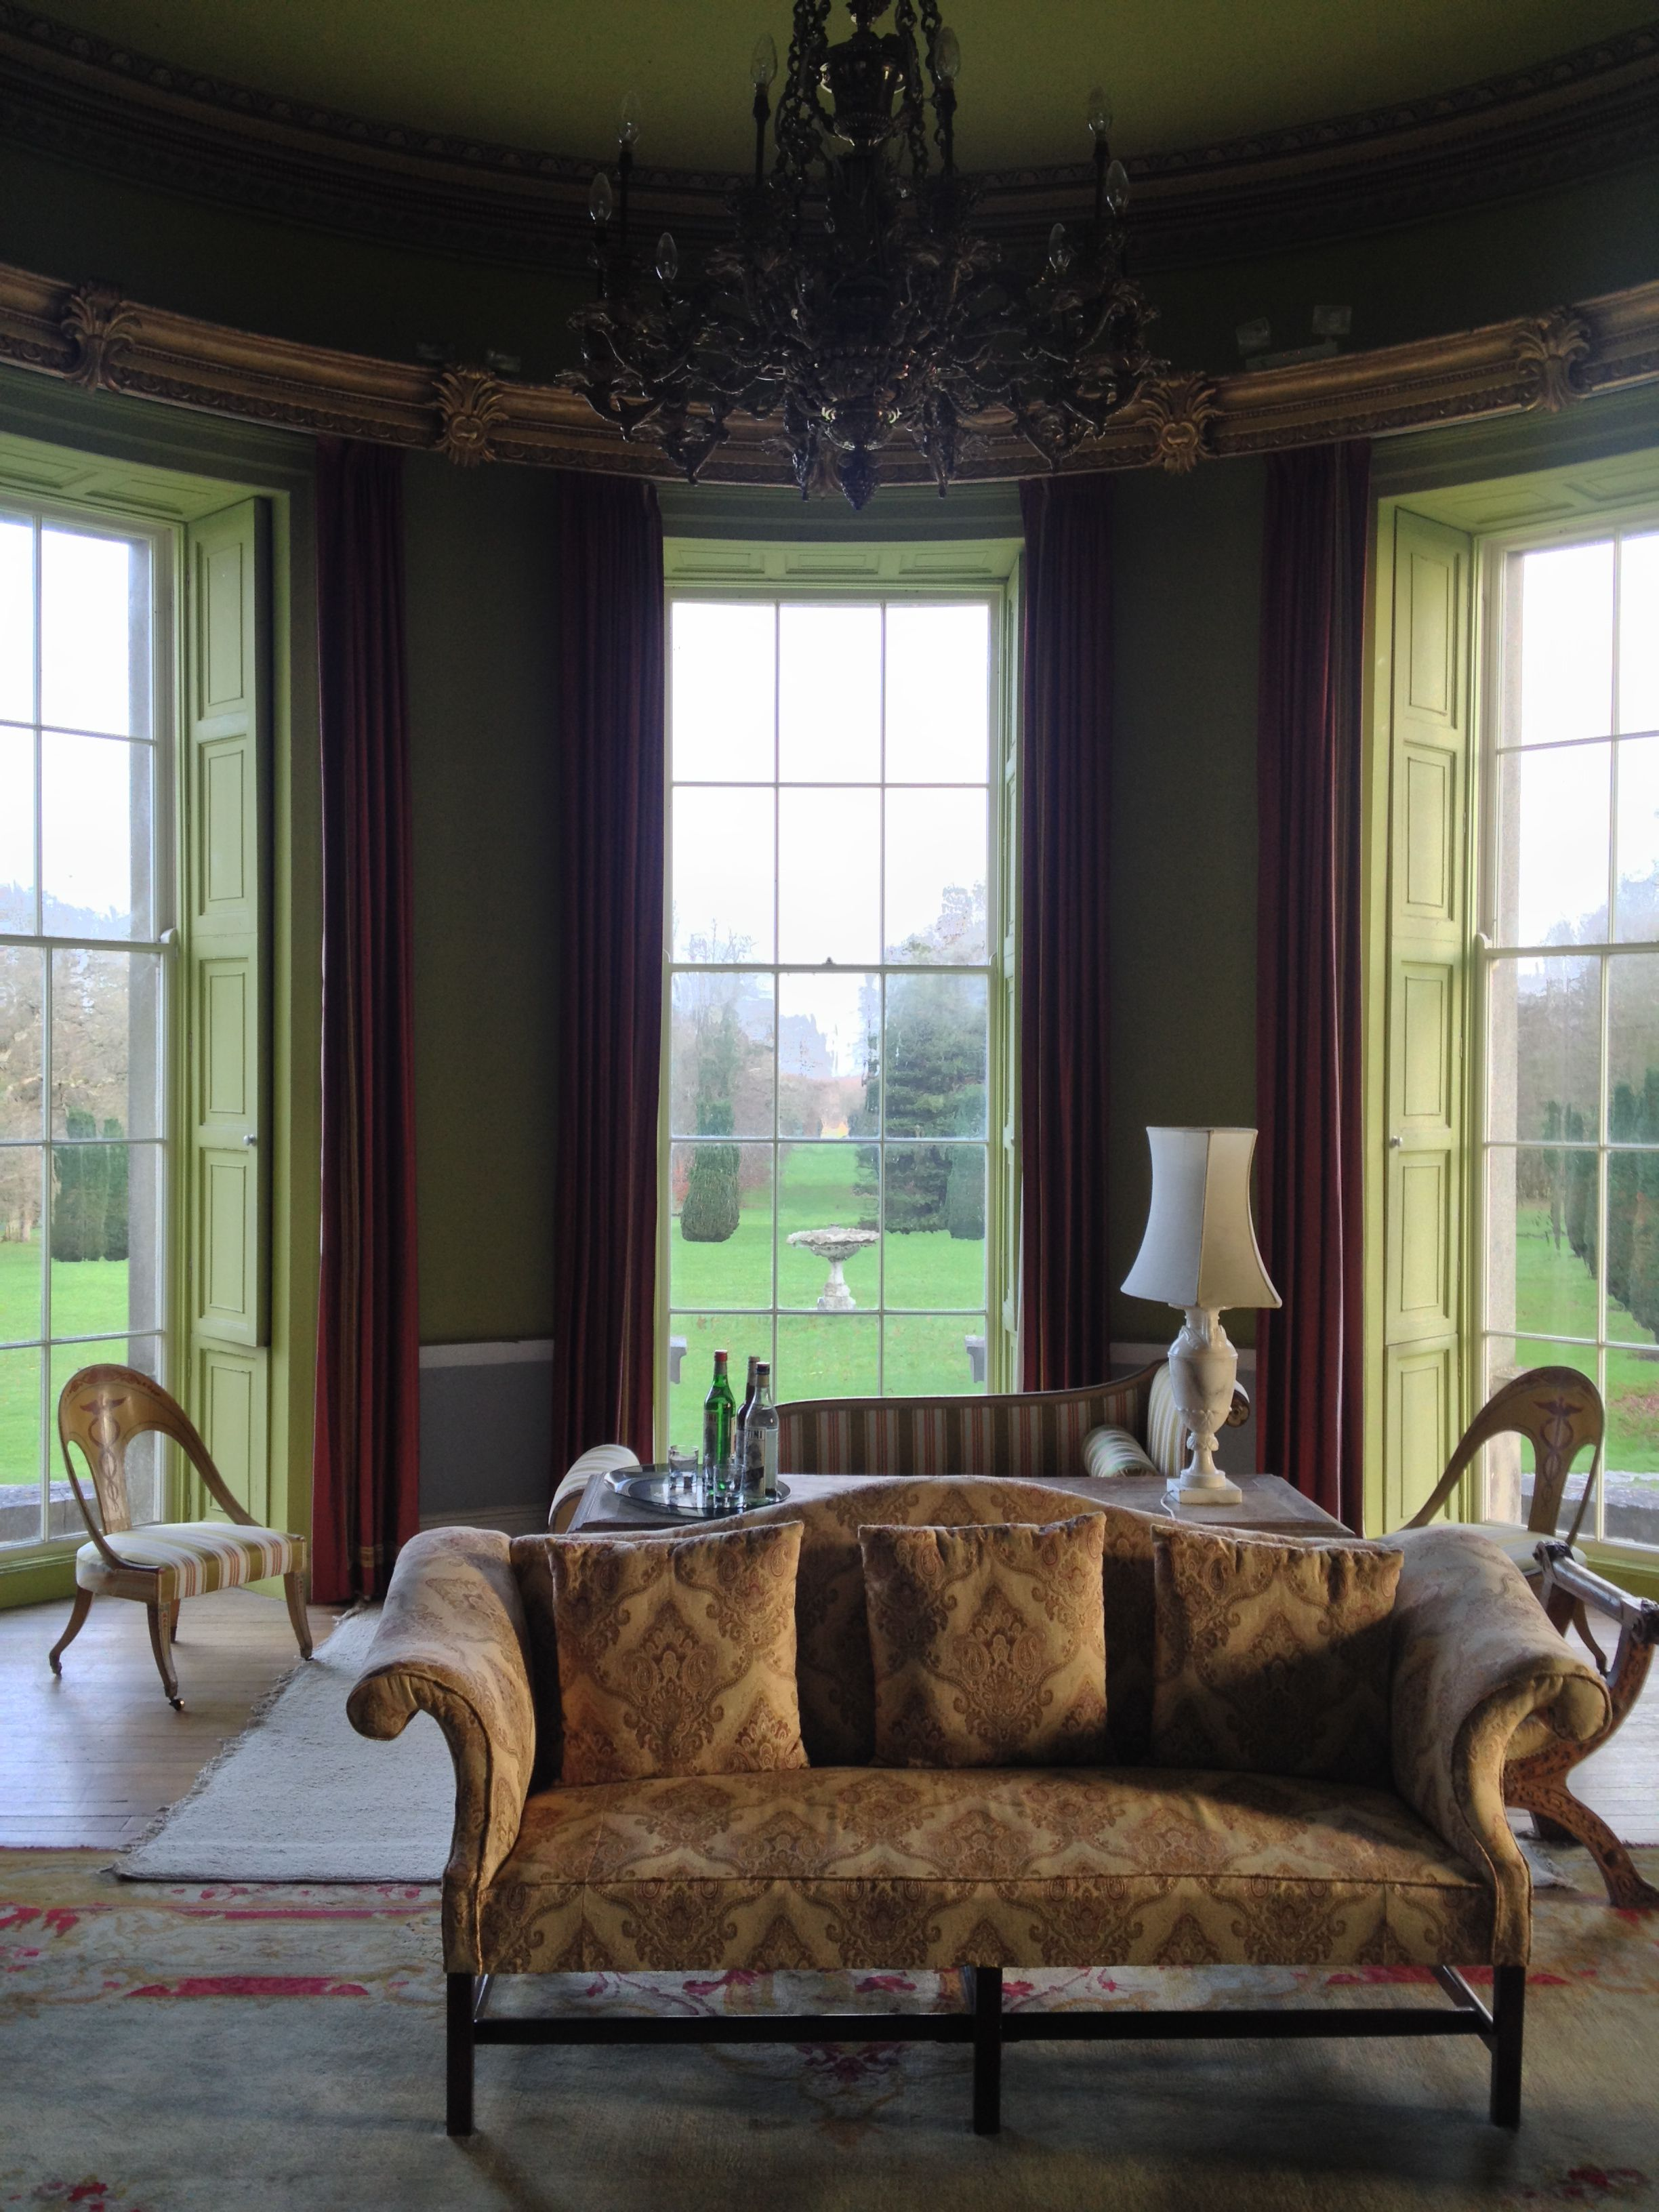 Posts About Interior Decoration On The Irish Aesthete